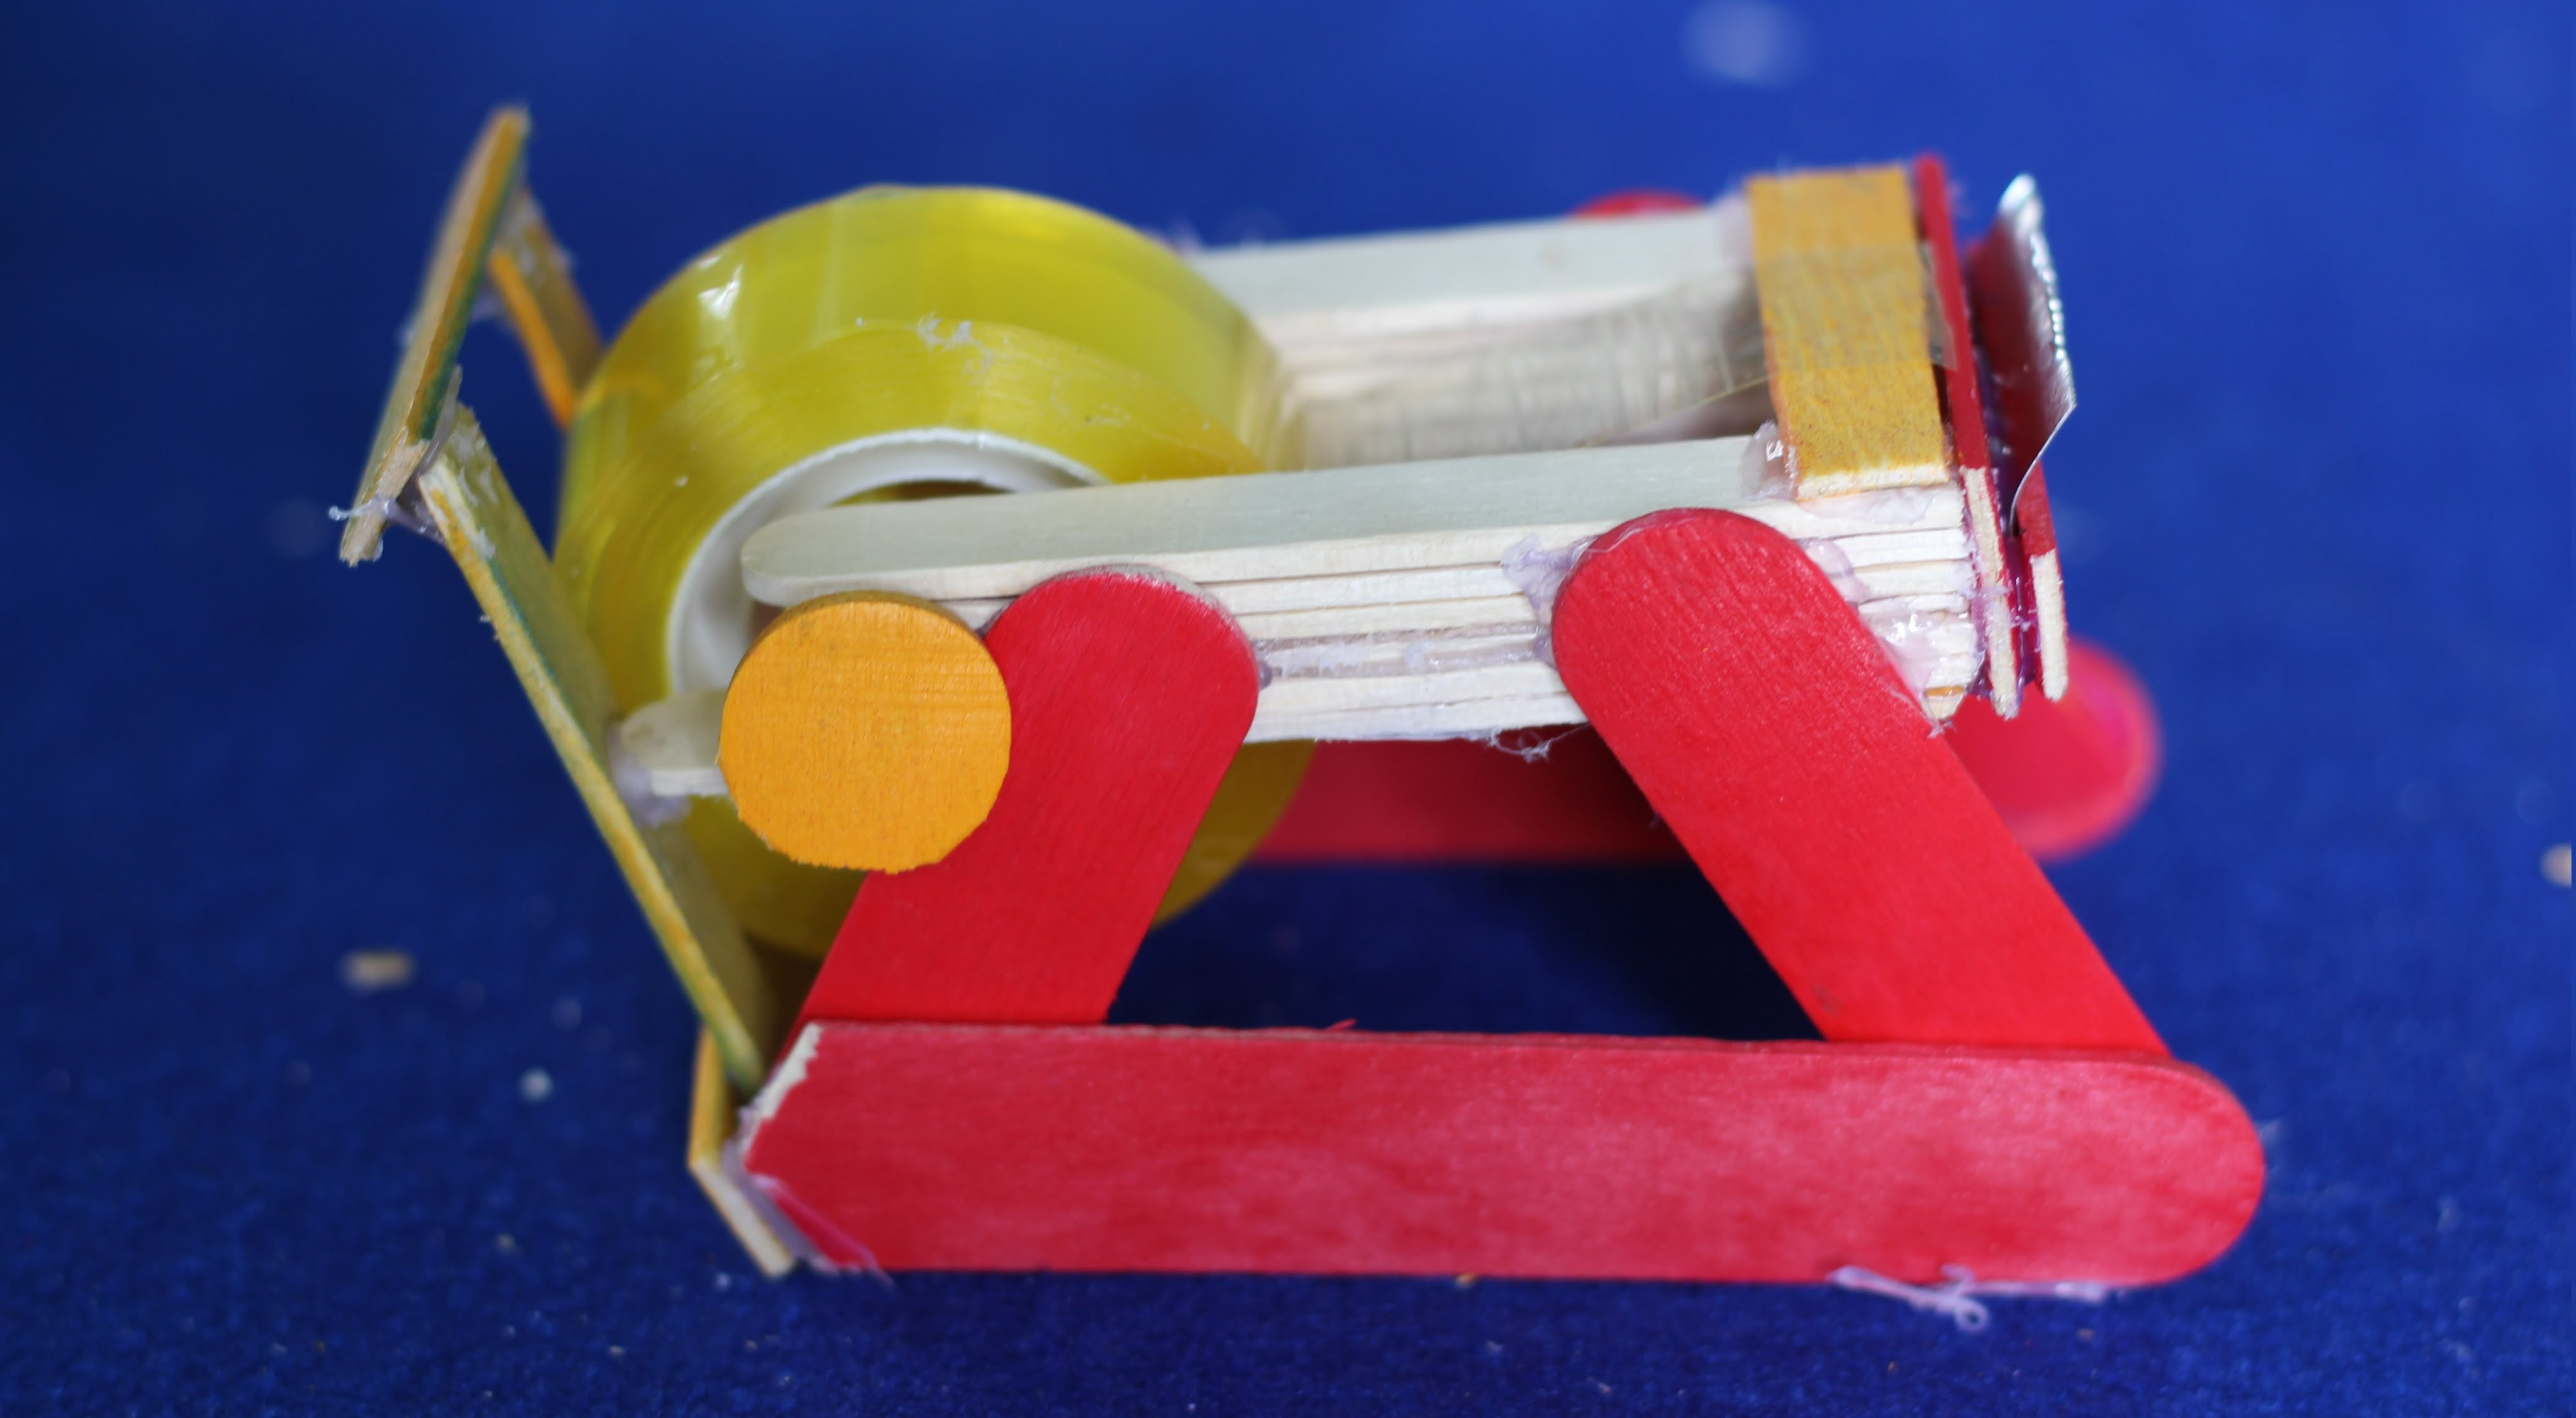 How to make a Tape Dispenser (tape cutter) using popsicle sticks